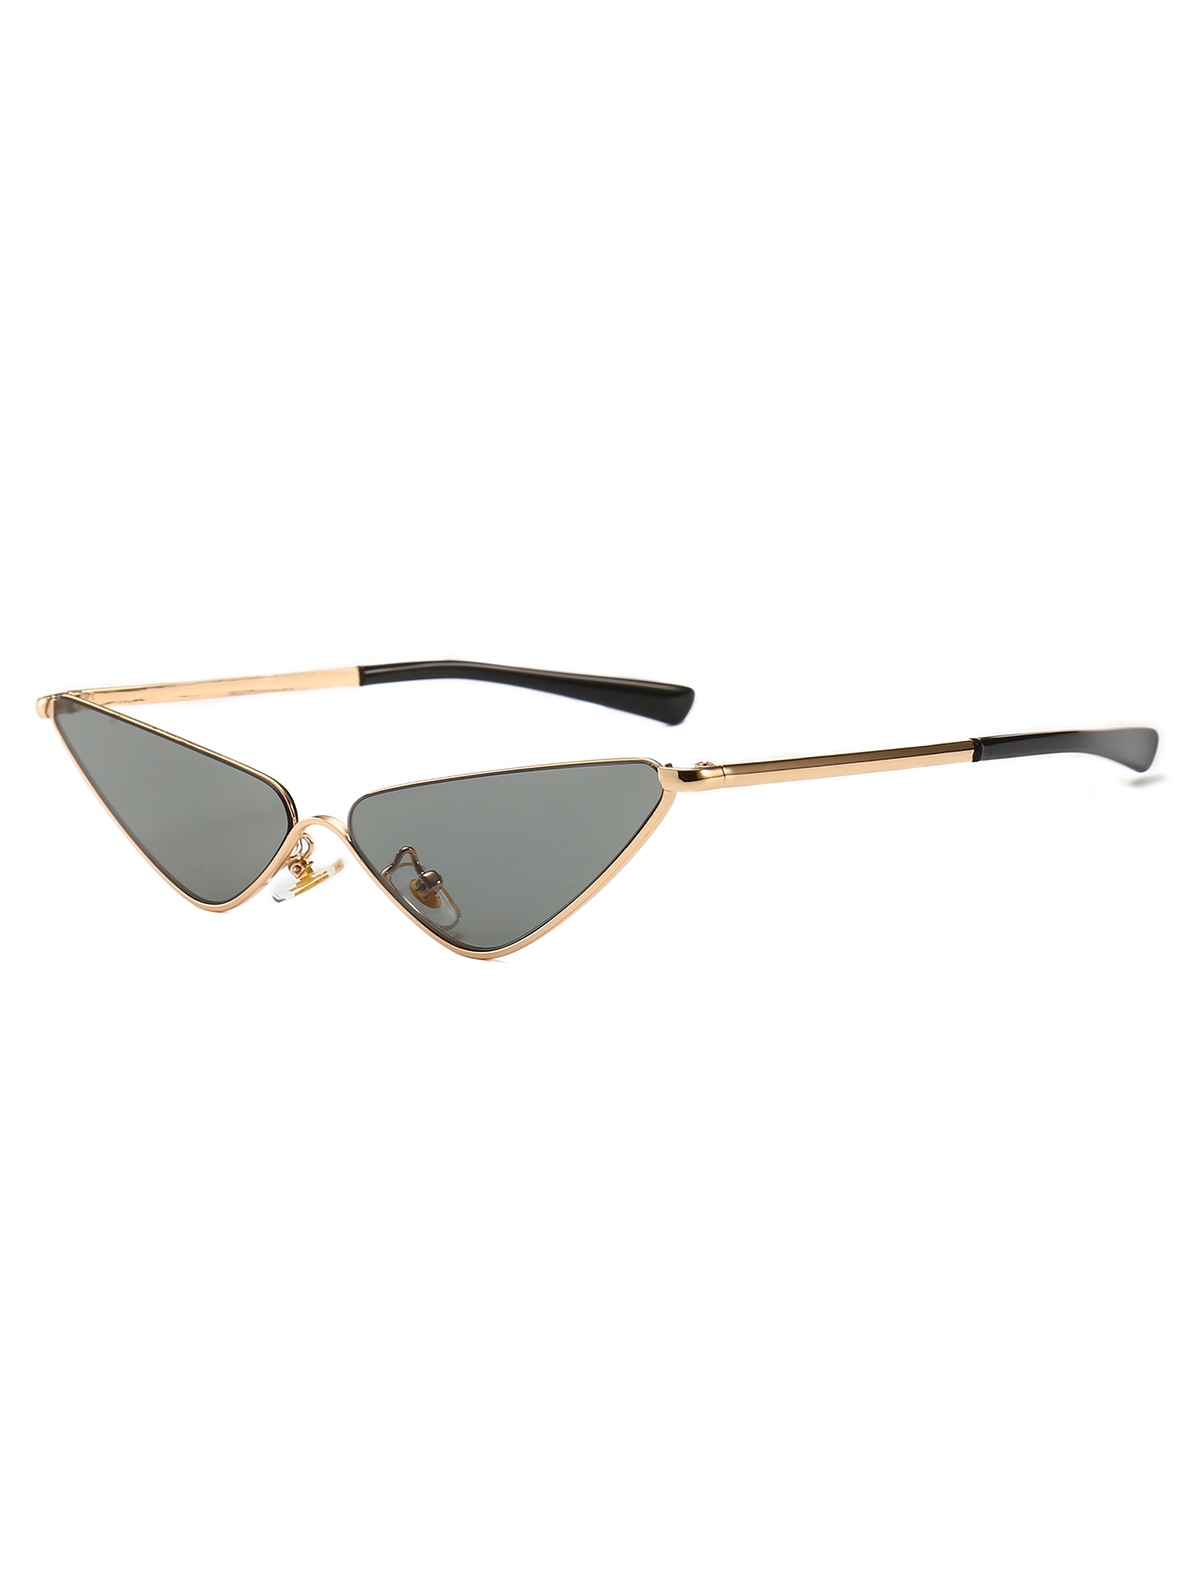 Retro Half Frame Catty Sunglasses